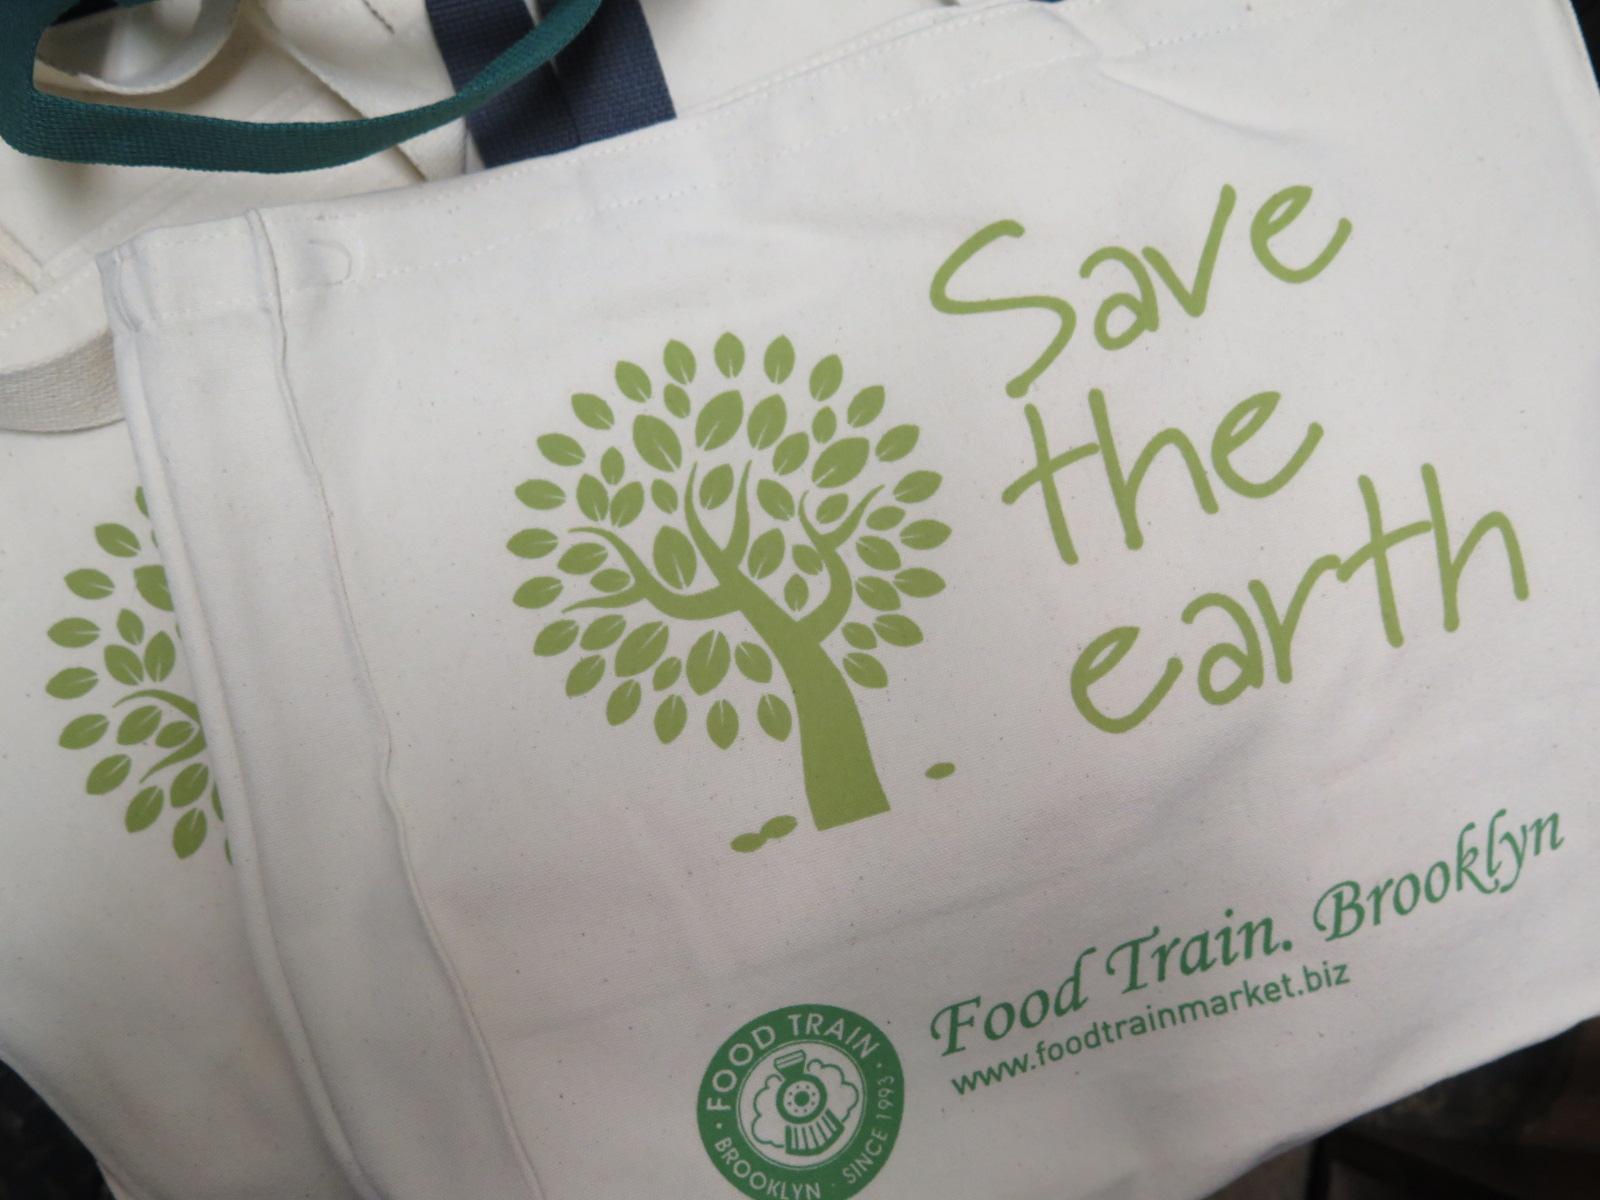 Come and get a free eco bag when you shop with us